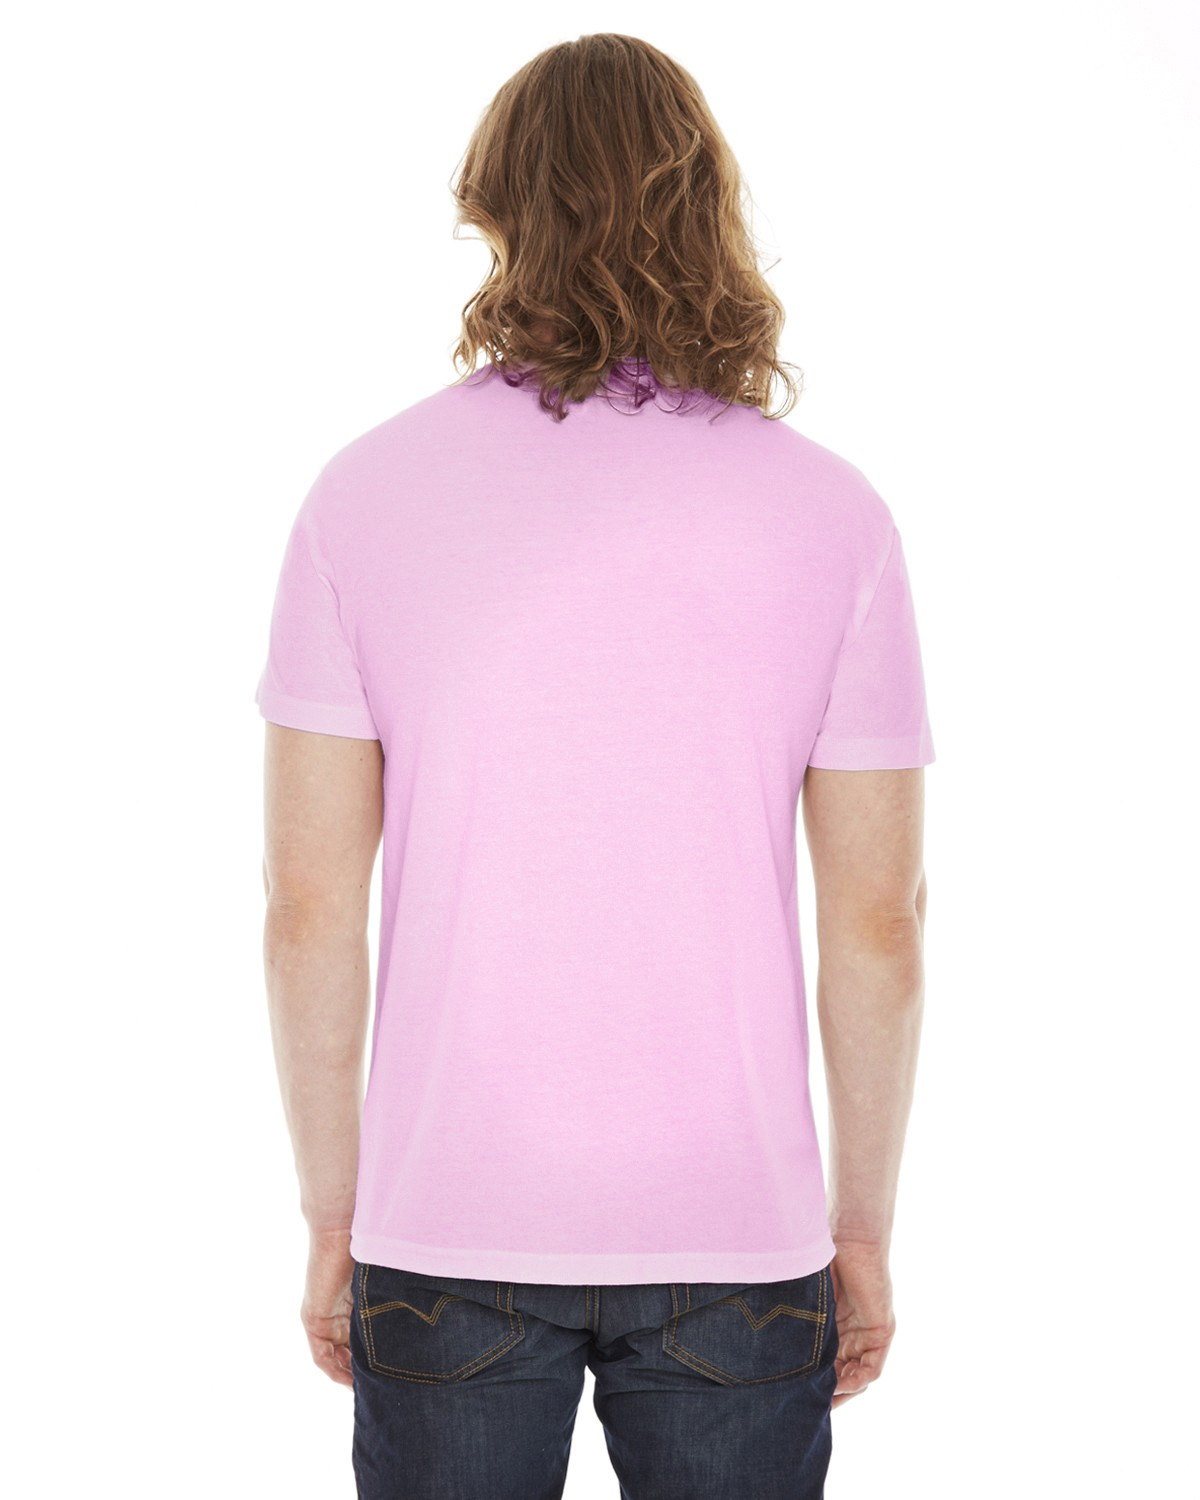 BB401W American Apparel PINK